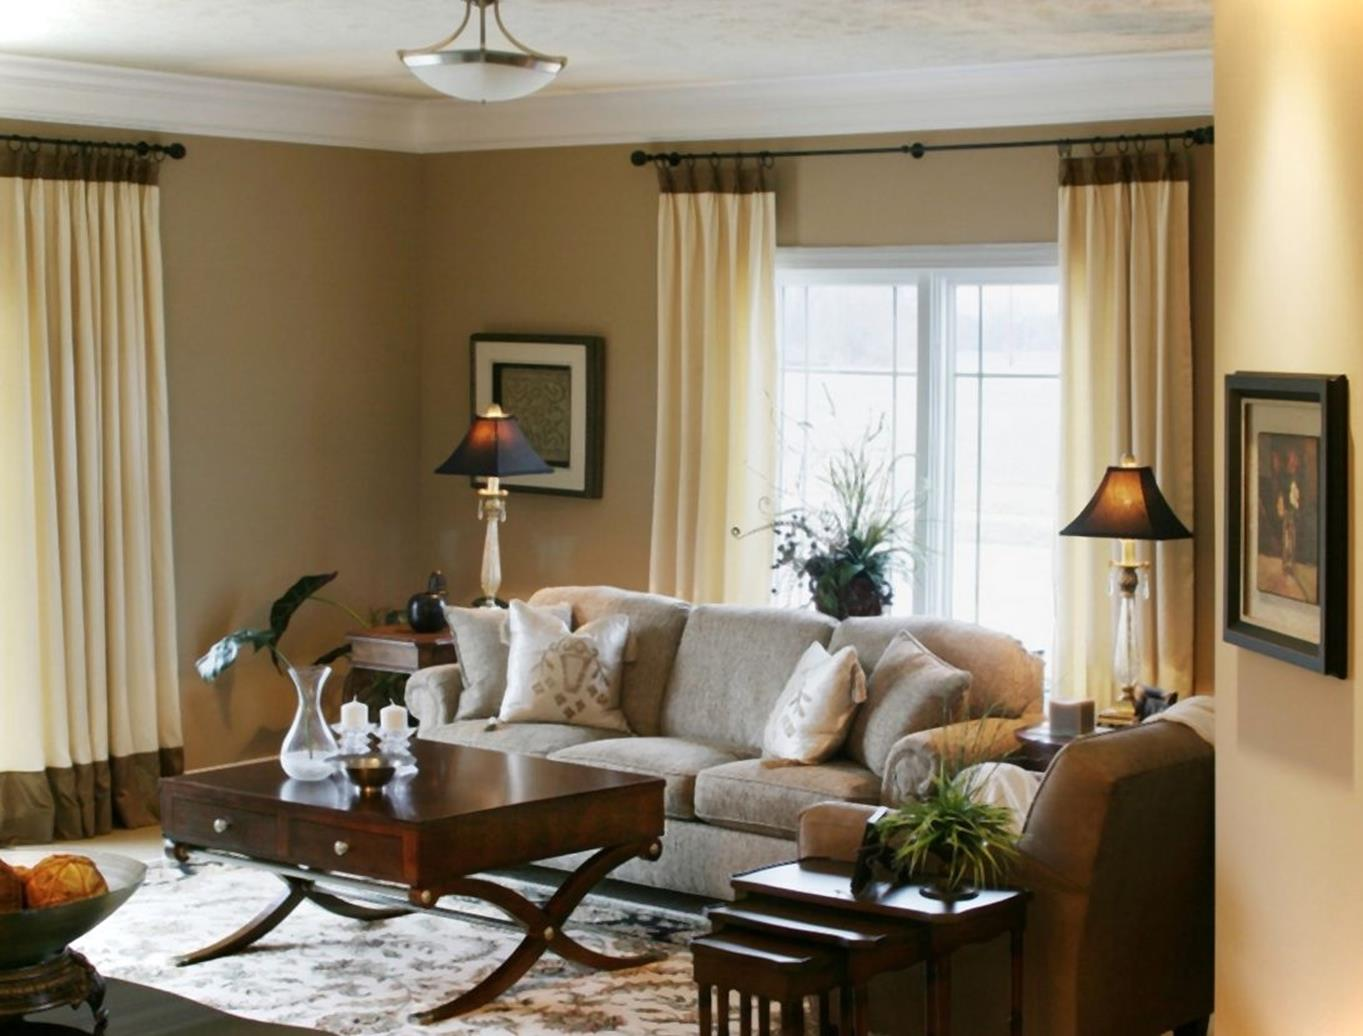 Best Neutral Paint Colors For Living Room 37